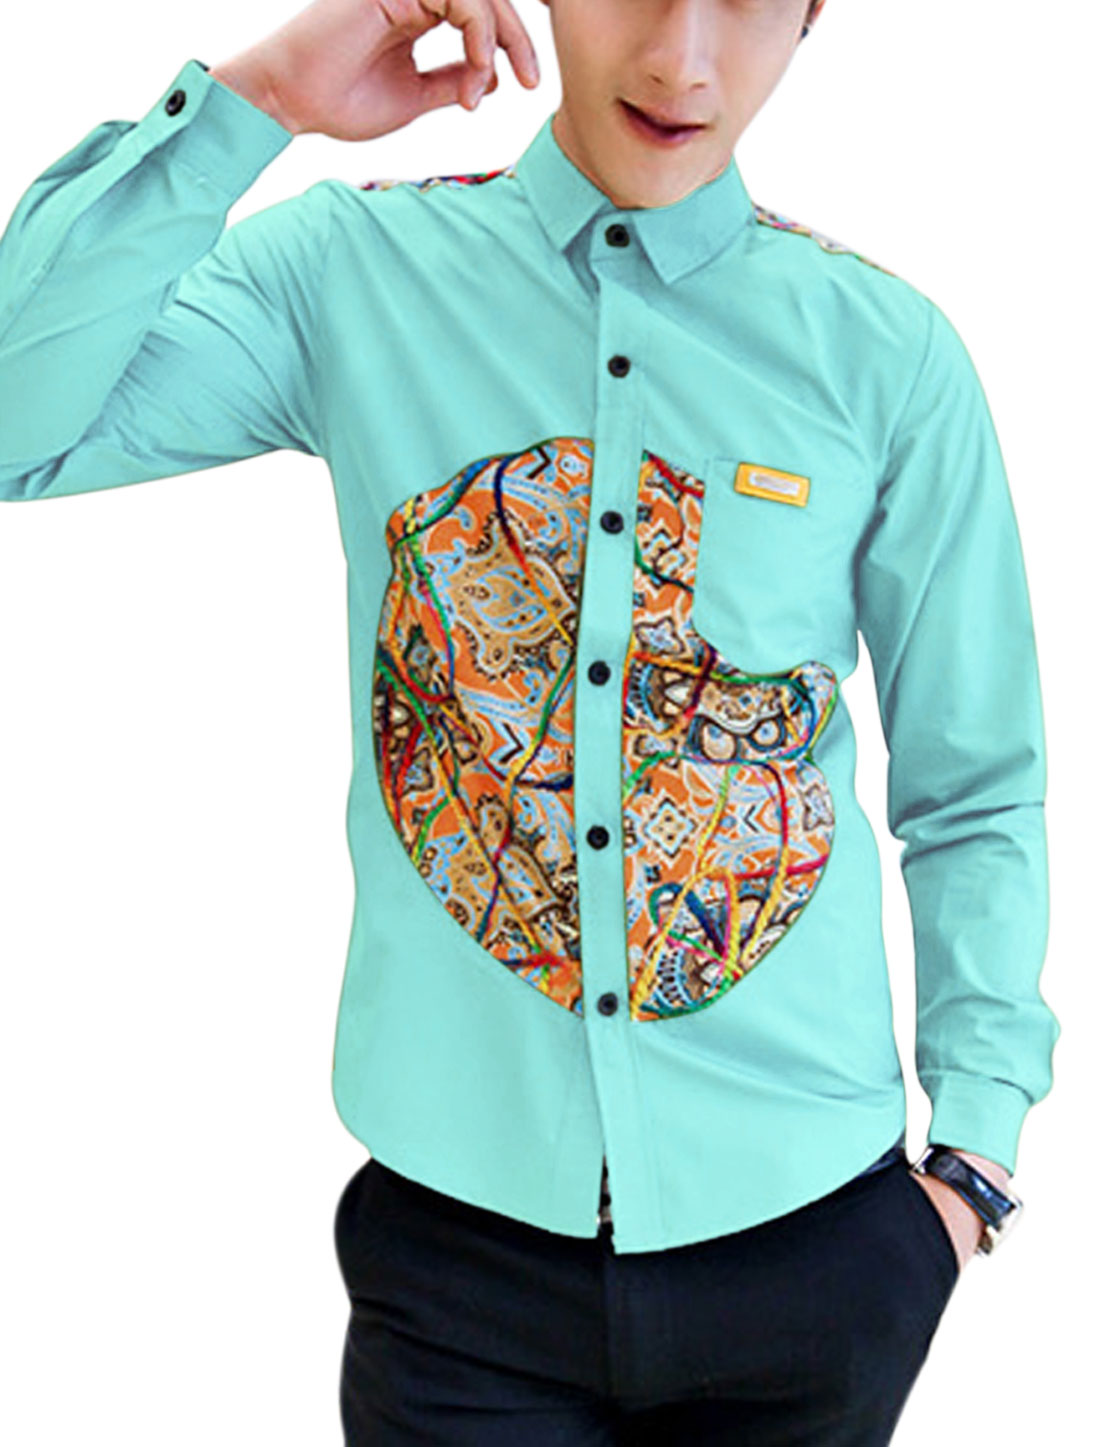 Men Casual Contrast Novelty Print Imitation Leather Detail Shirt Light Blue M